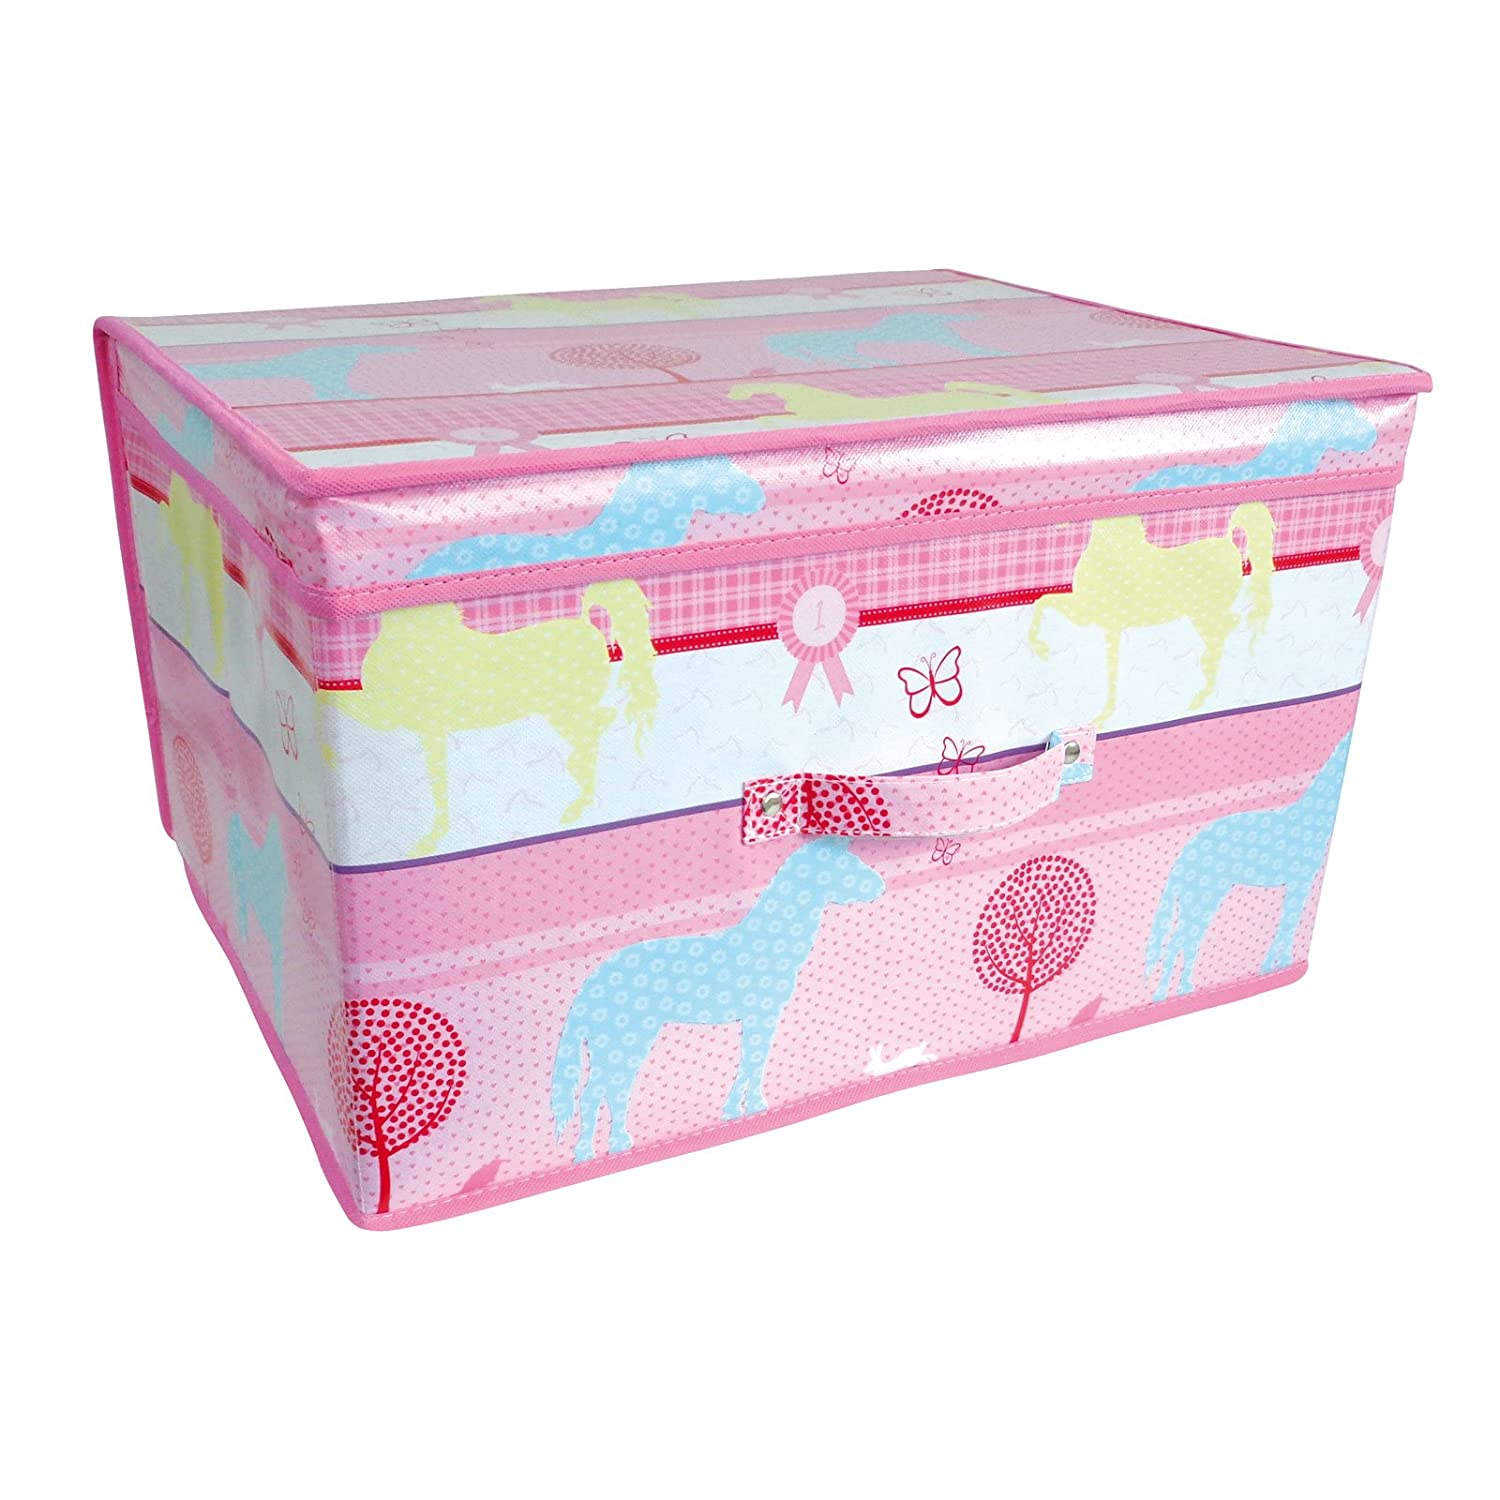 Horses Foldable Pop Up Room Tidy Storage Chest Toy Box, Fabric, Pink, 50 x 30 x 40 cm Country Club Horses-Pink-Storage